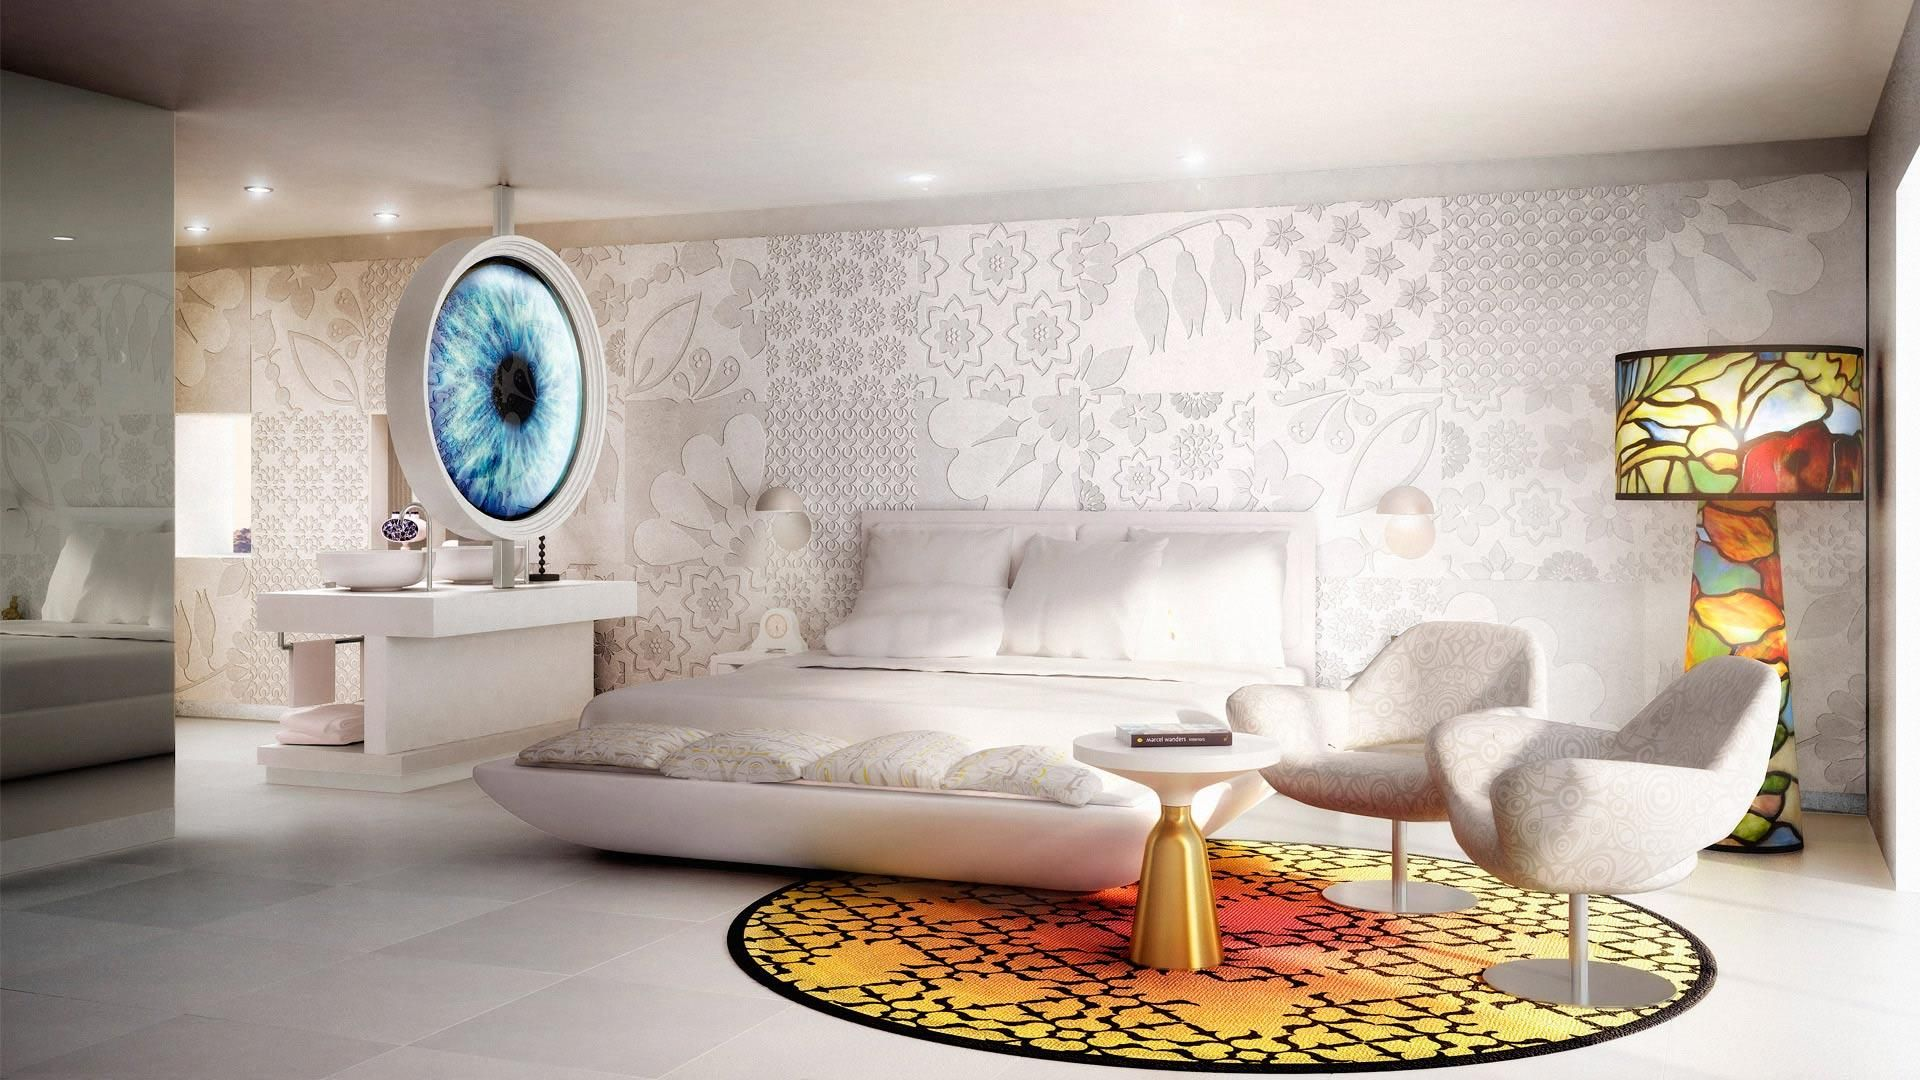 Marcel Wanders Is A Leading Product And Interior Design Studio Located In The Creative Capital